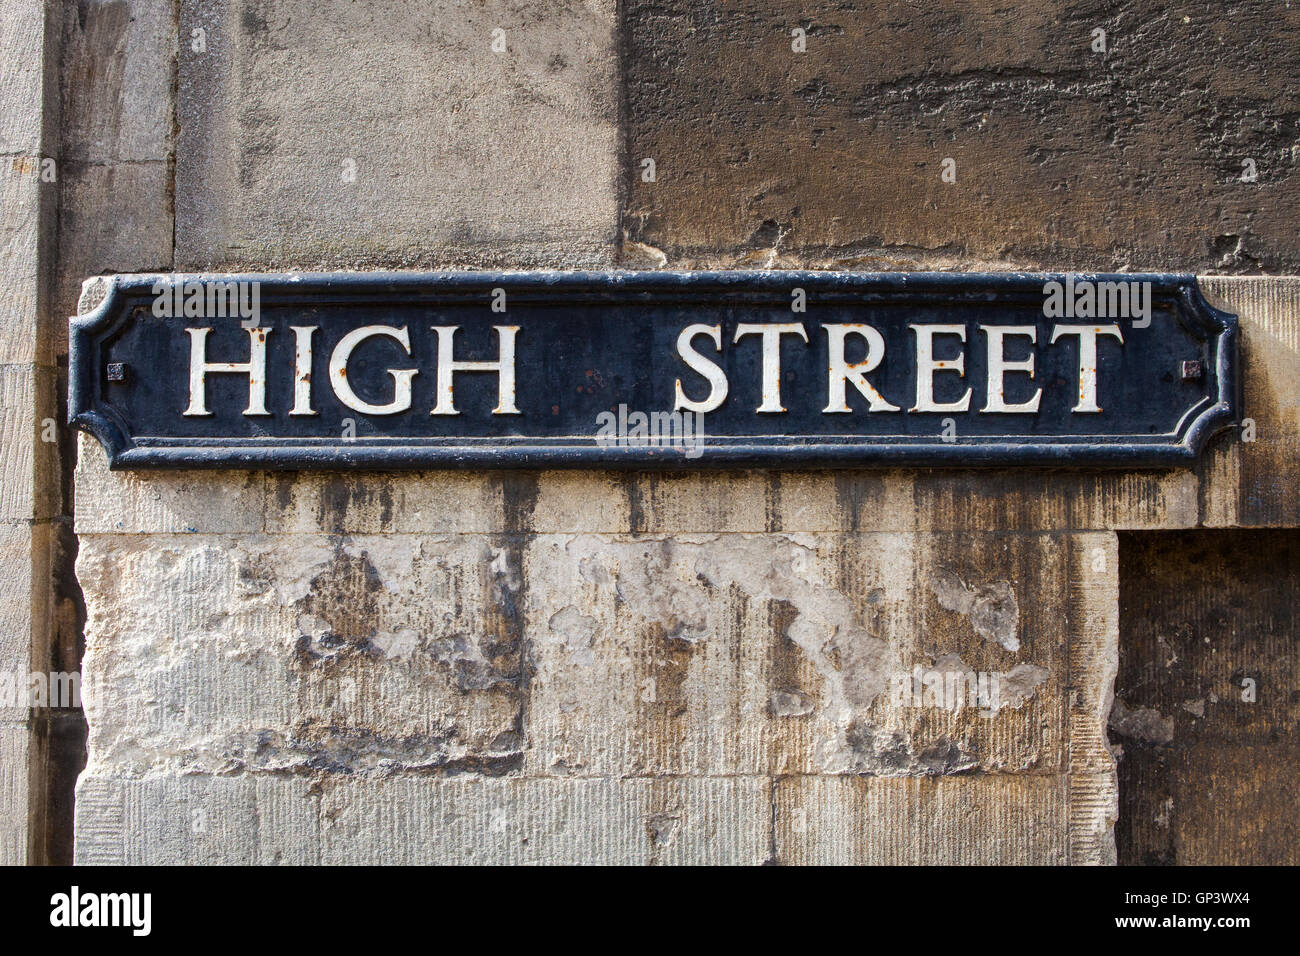 Street sign for the High Street in the historic city of Oxford, England. - Stock Image